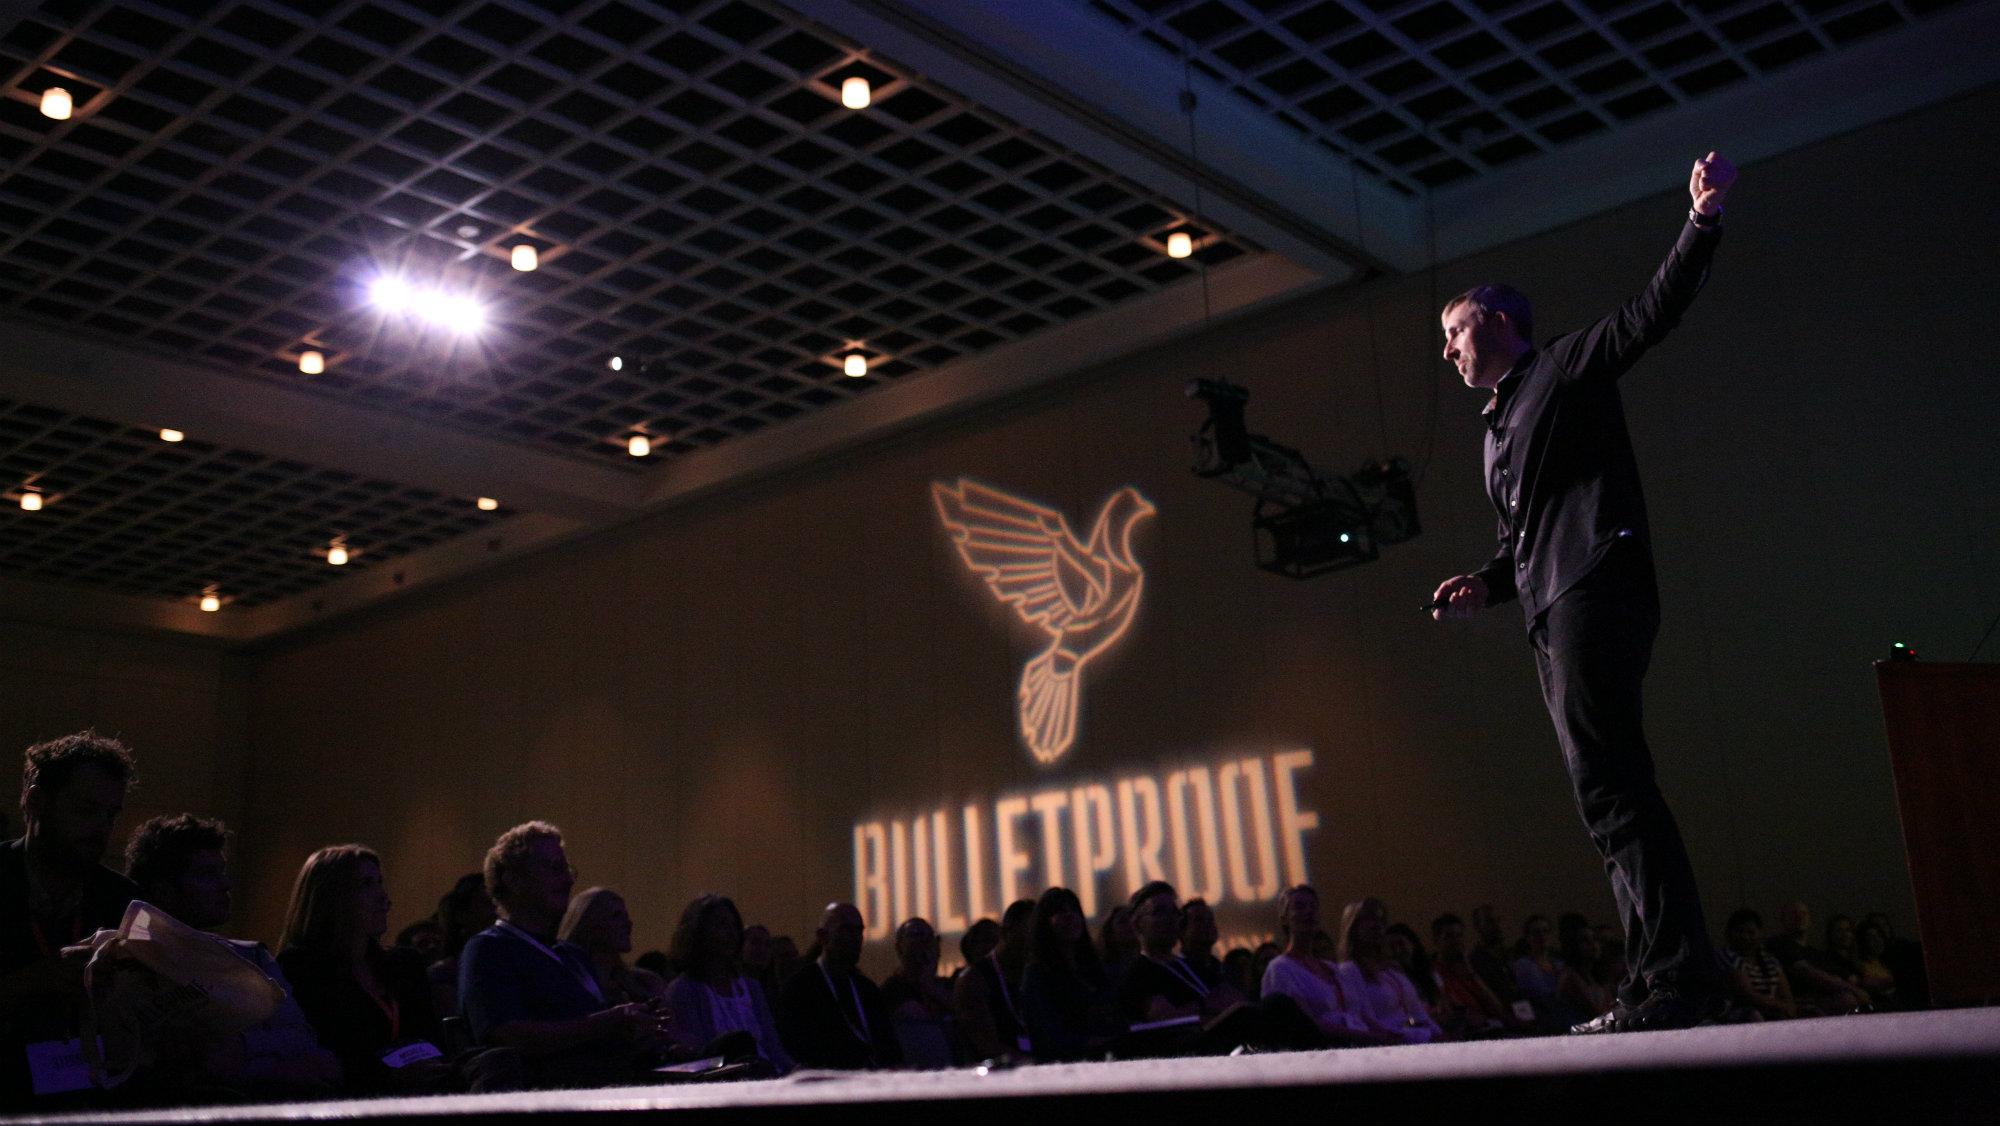 Bulletproof founder and CEO Dave Asprey on stage at the 3rd annual Bulletproof conference in Pasadena, October 2015.